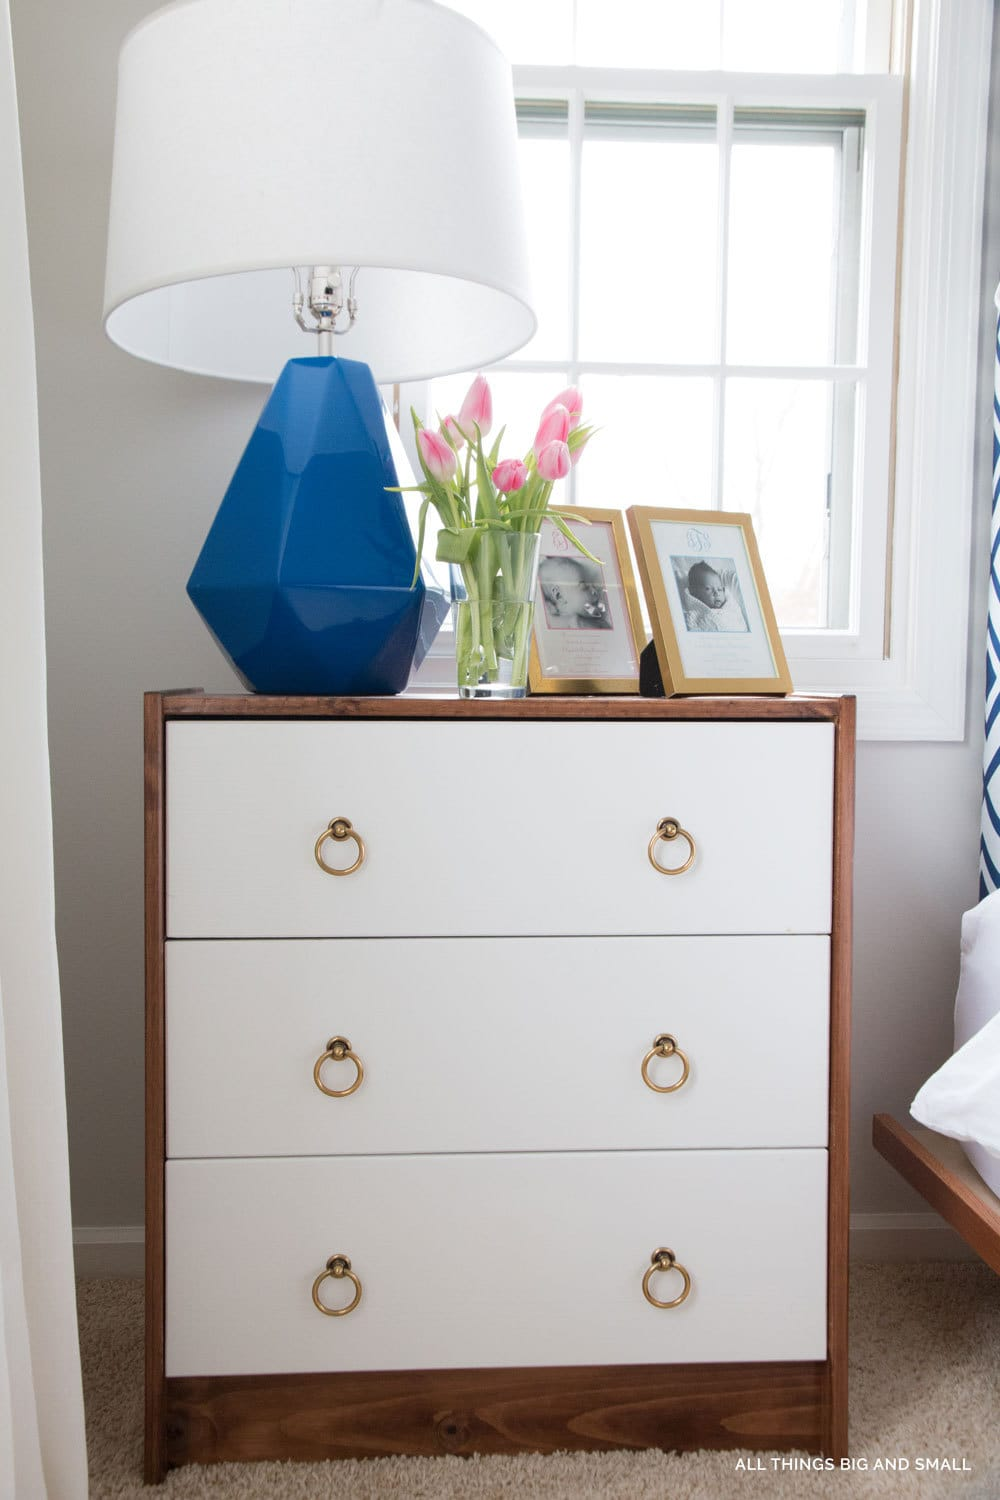 5 minute fix for bedside table lamps that are too far from your bed! ALL THINGS BIG AND SMALL